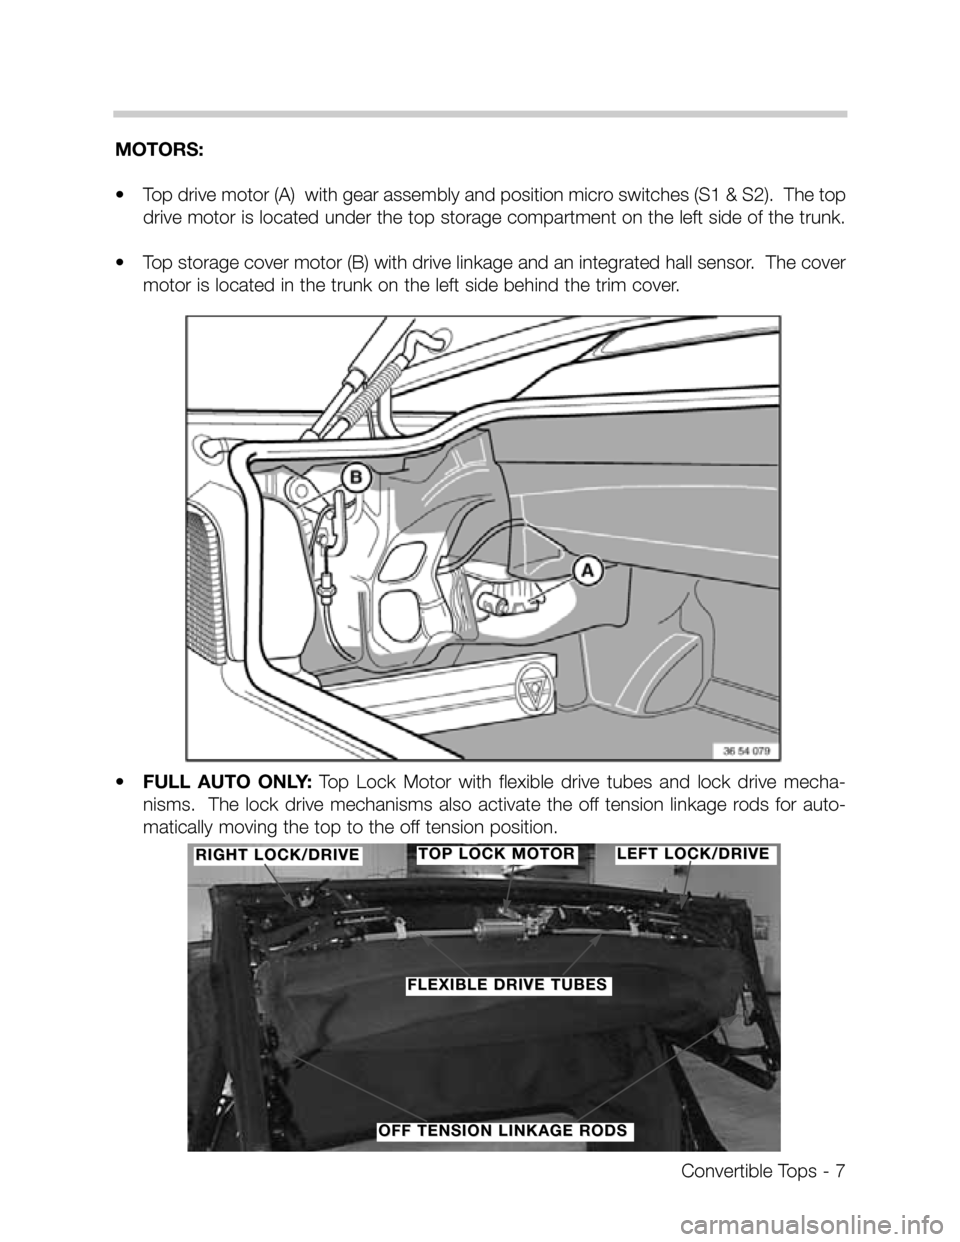 BMW Z3 CONVERTIBLE 1995 E36 Convertible Tops Manual, Page 7